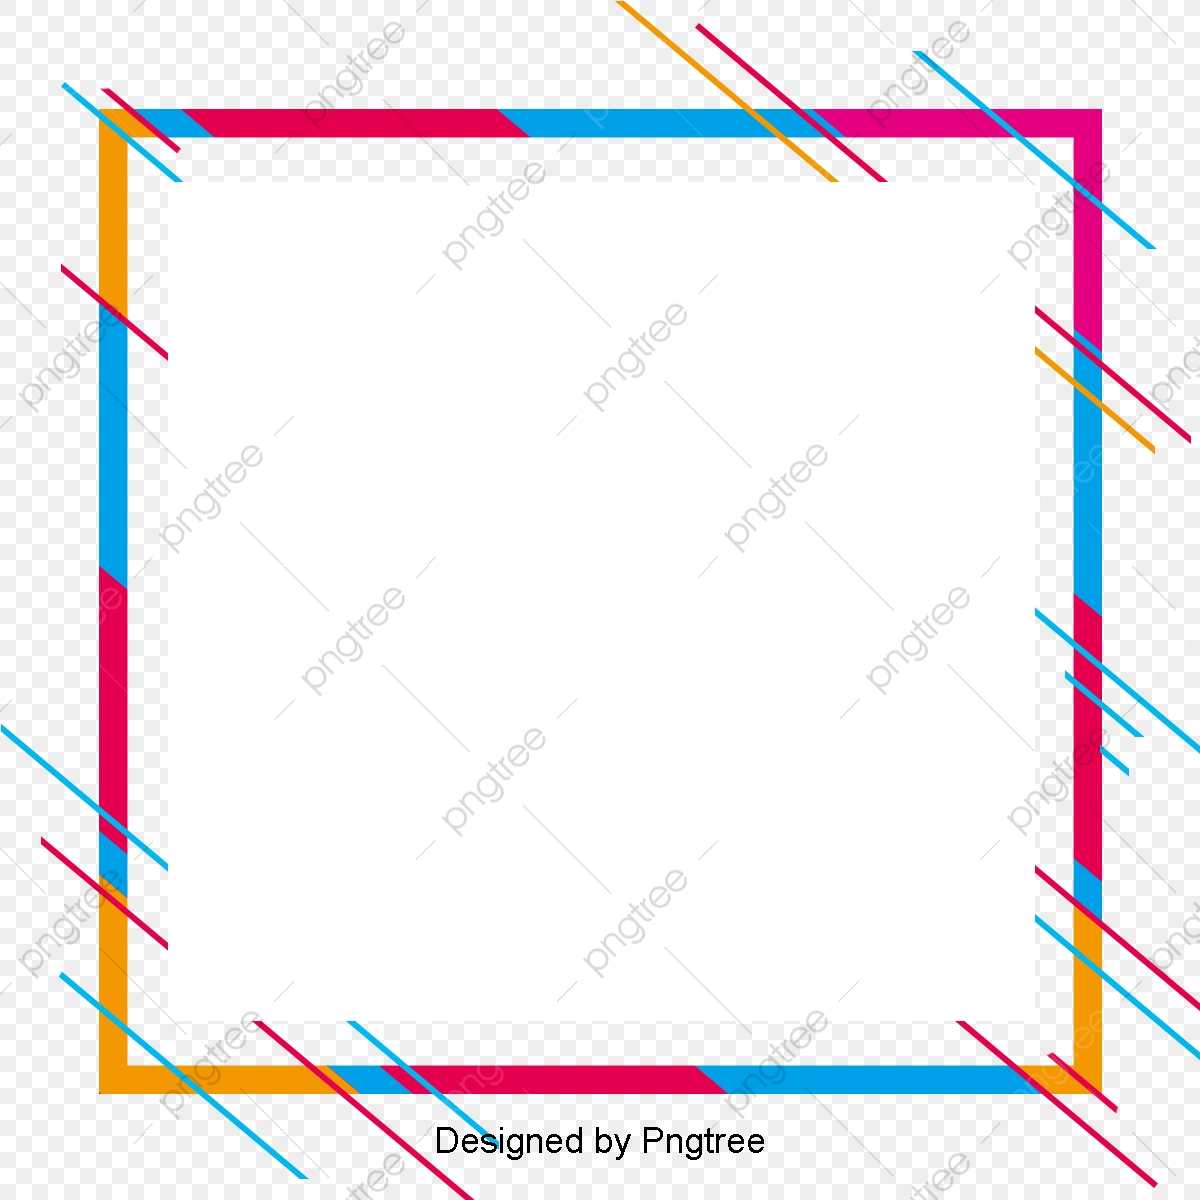 Stylish And Simple Border Design Line Borders Color Clipart Png Transparent Clipart Image And Psd File For Free Download